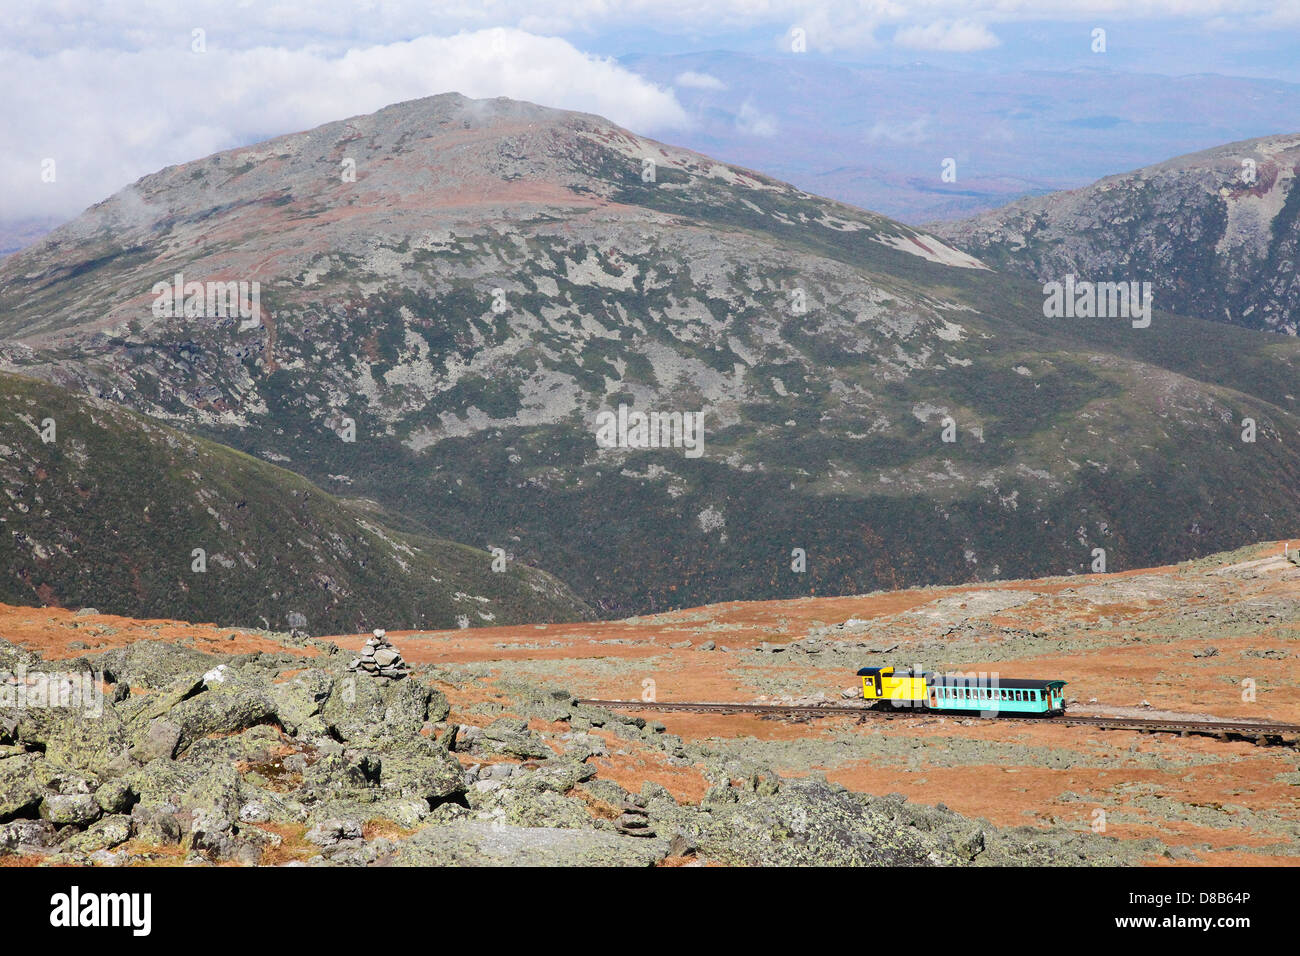 Mount Washington Cog Railroad to the peak in the White Mountains, Coos County, New Hampshire, United States. - Stock Image